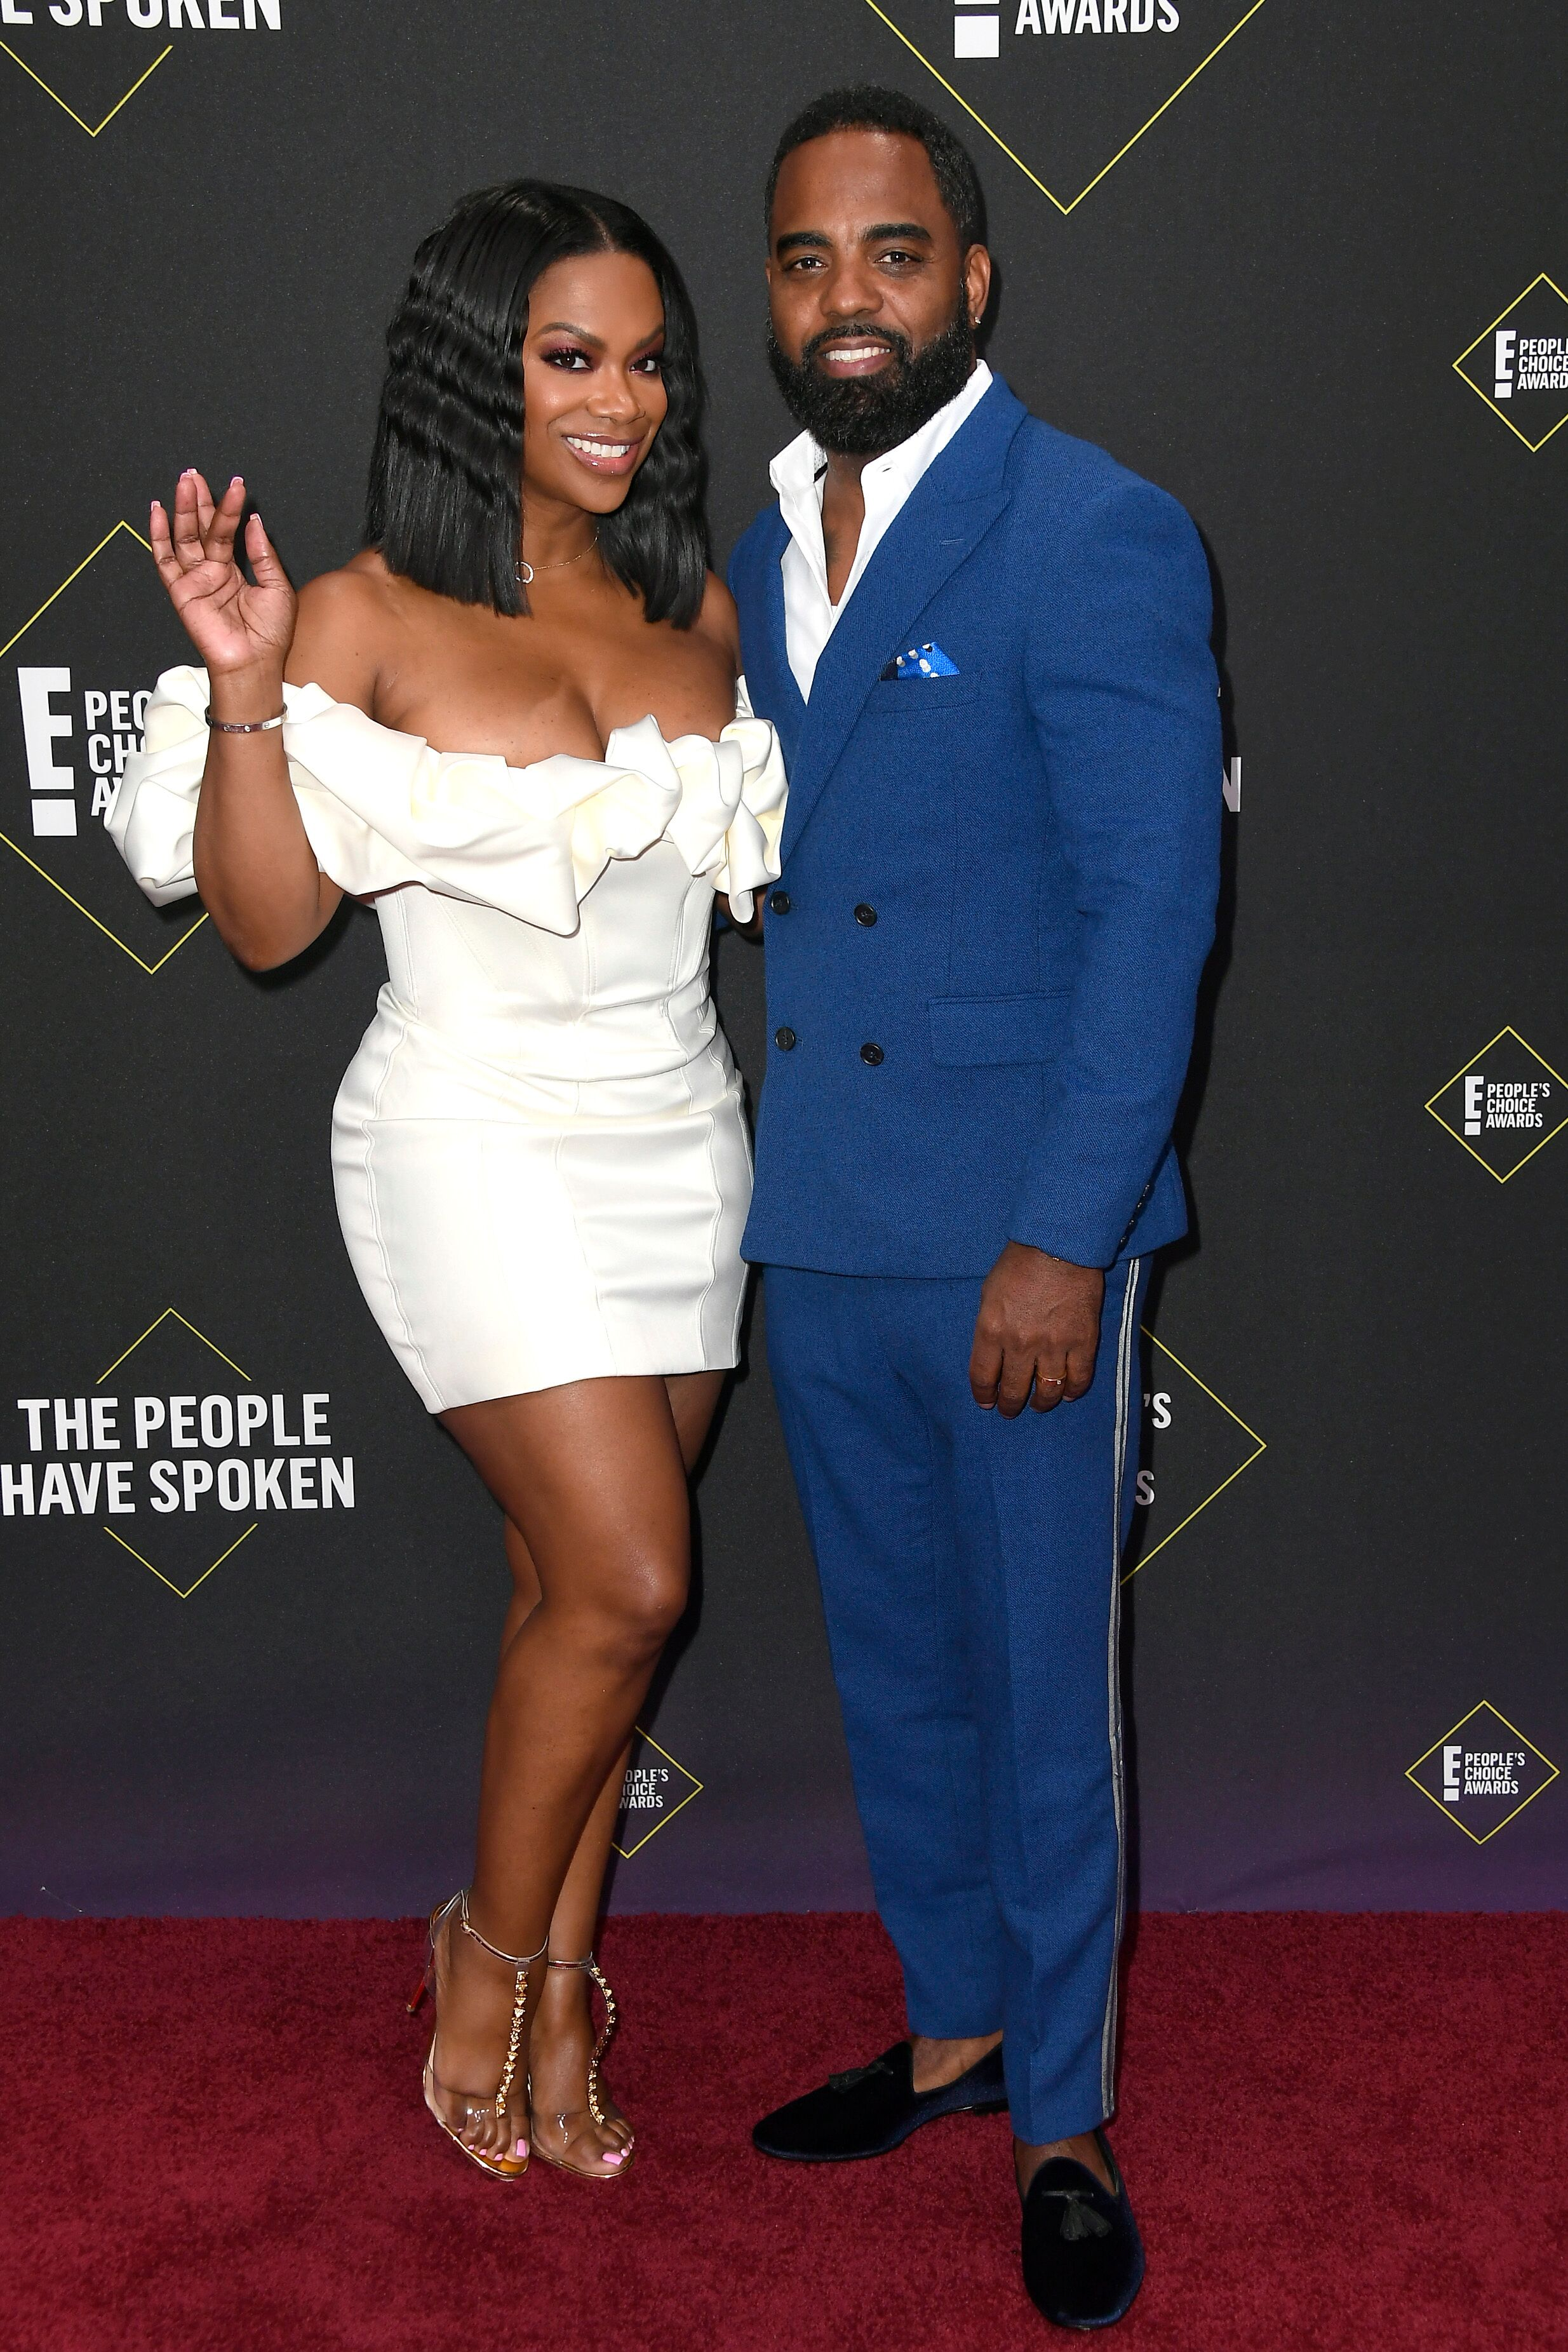 Kandi Burruss and Todd Tucker at the E! People's Choice Awards | Source: Getty Images/GlobalImagesUkraine